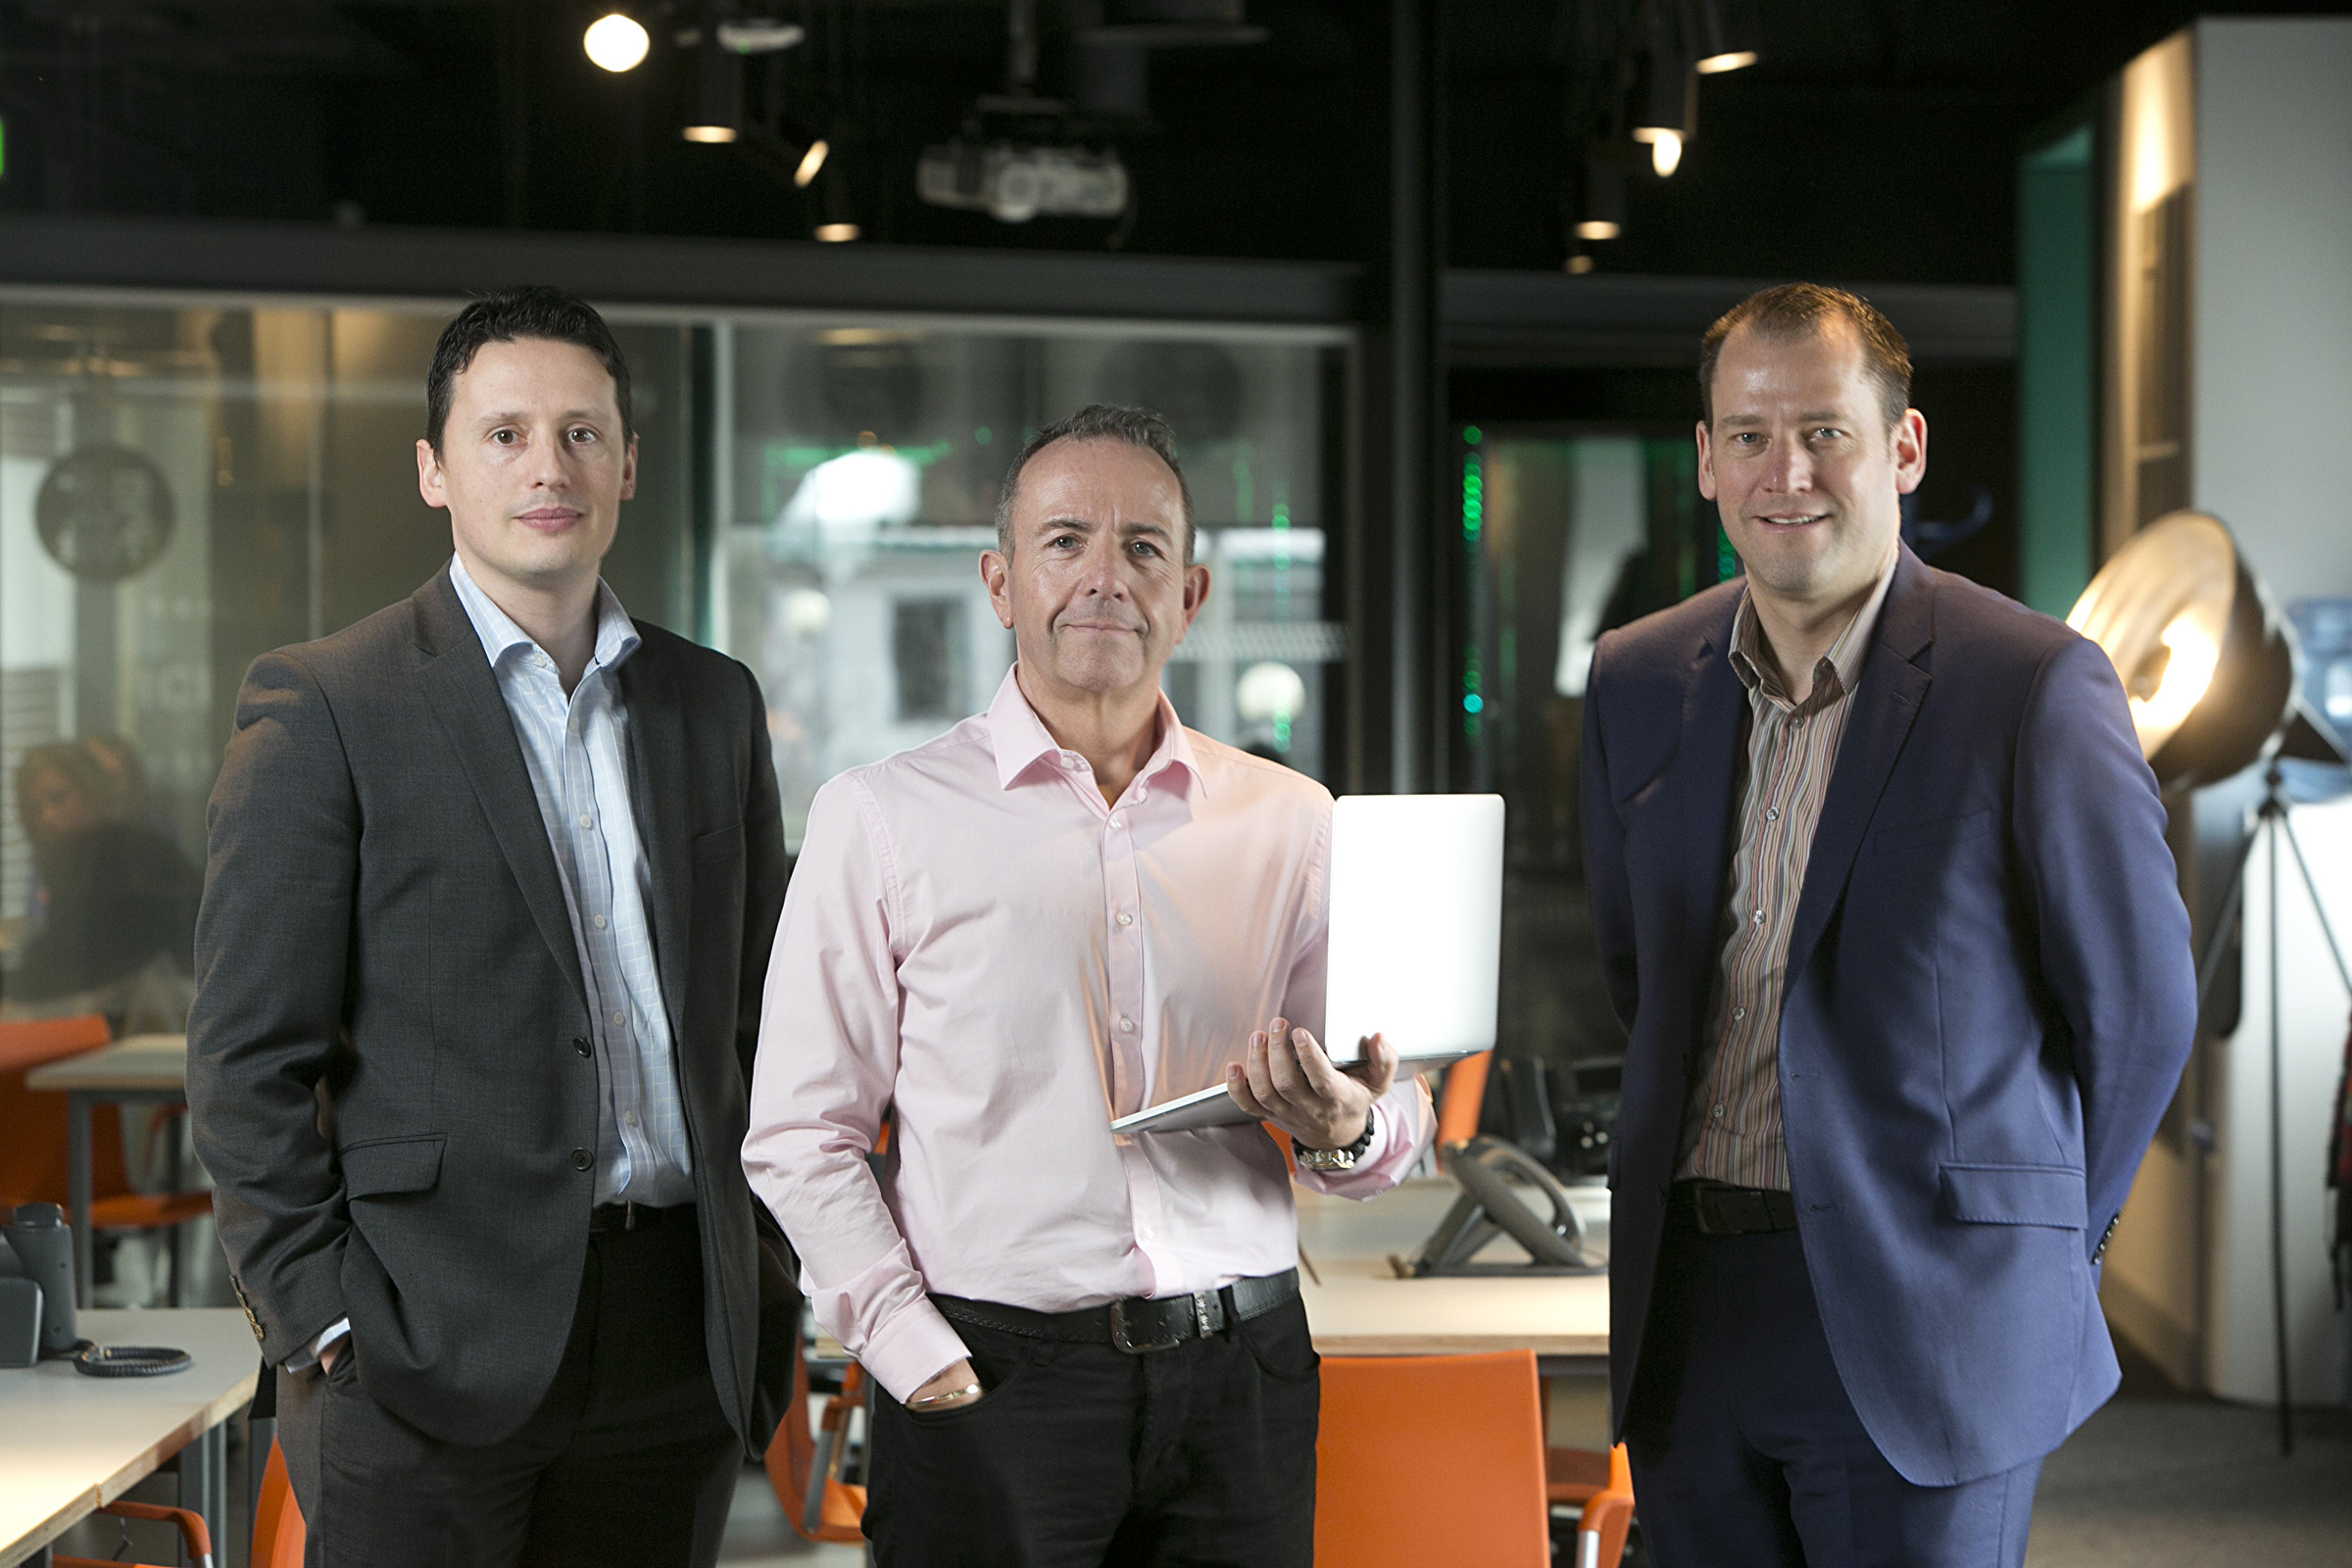 Gary McEwan (centre), chief executive of Elevator, with Stuart Winterburn (left), managing director of Dynamic Edge and Rob Hamilton (right), chief executive of Dynamic  Edge